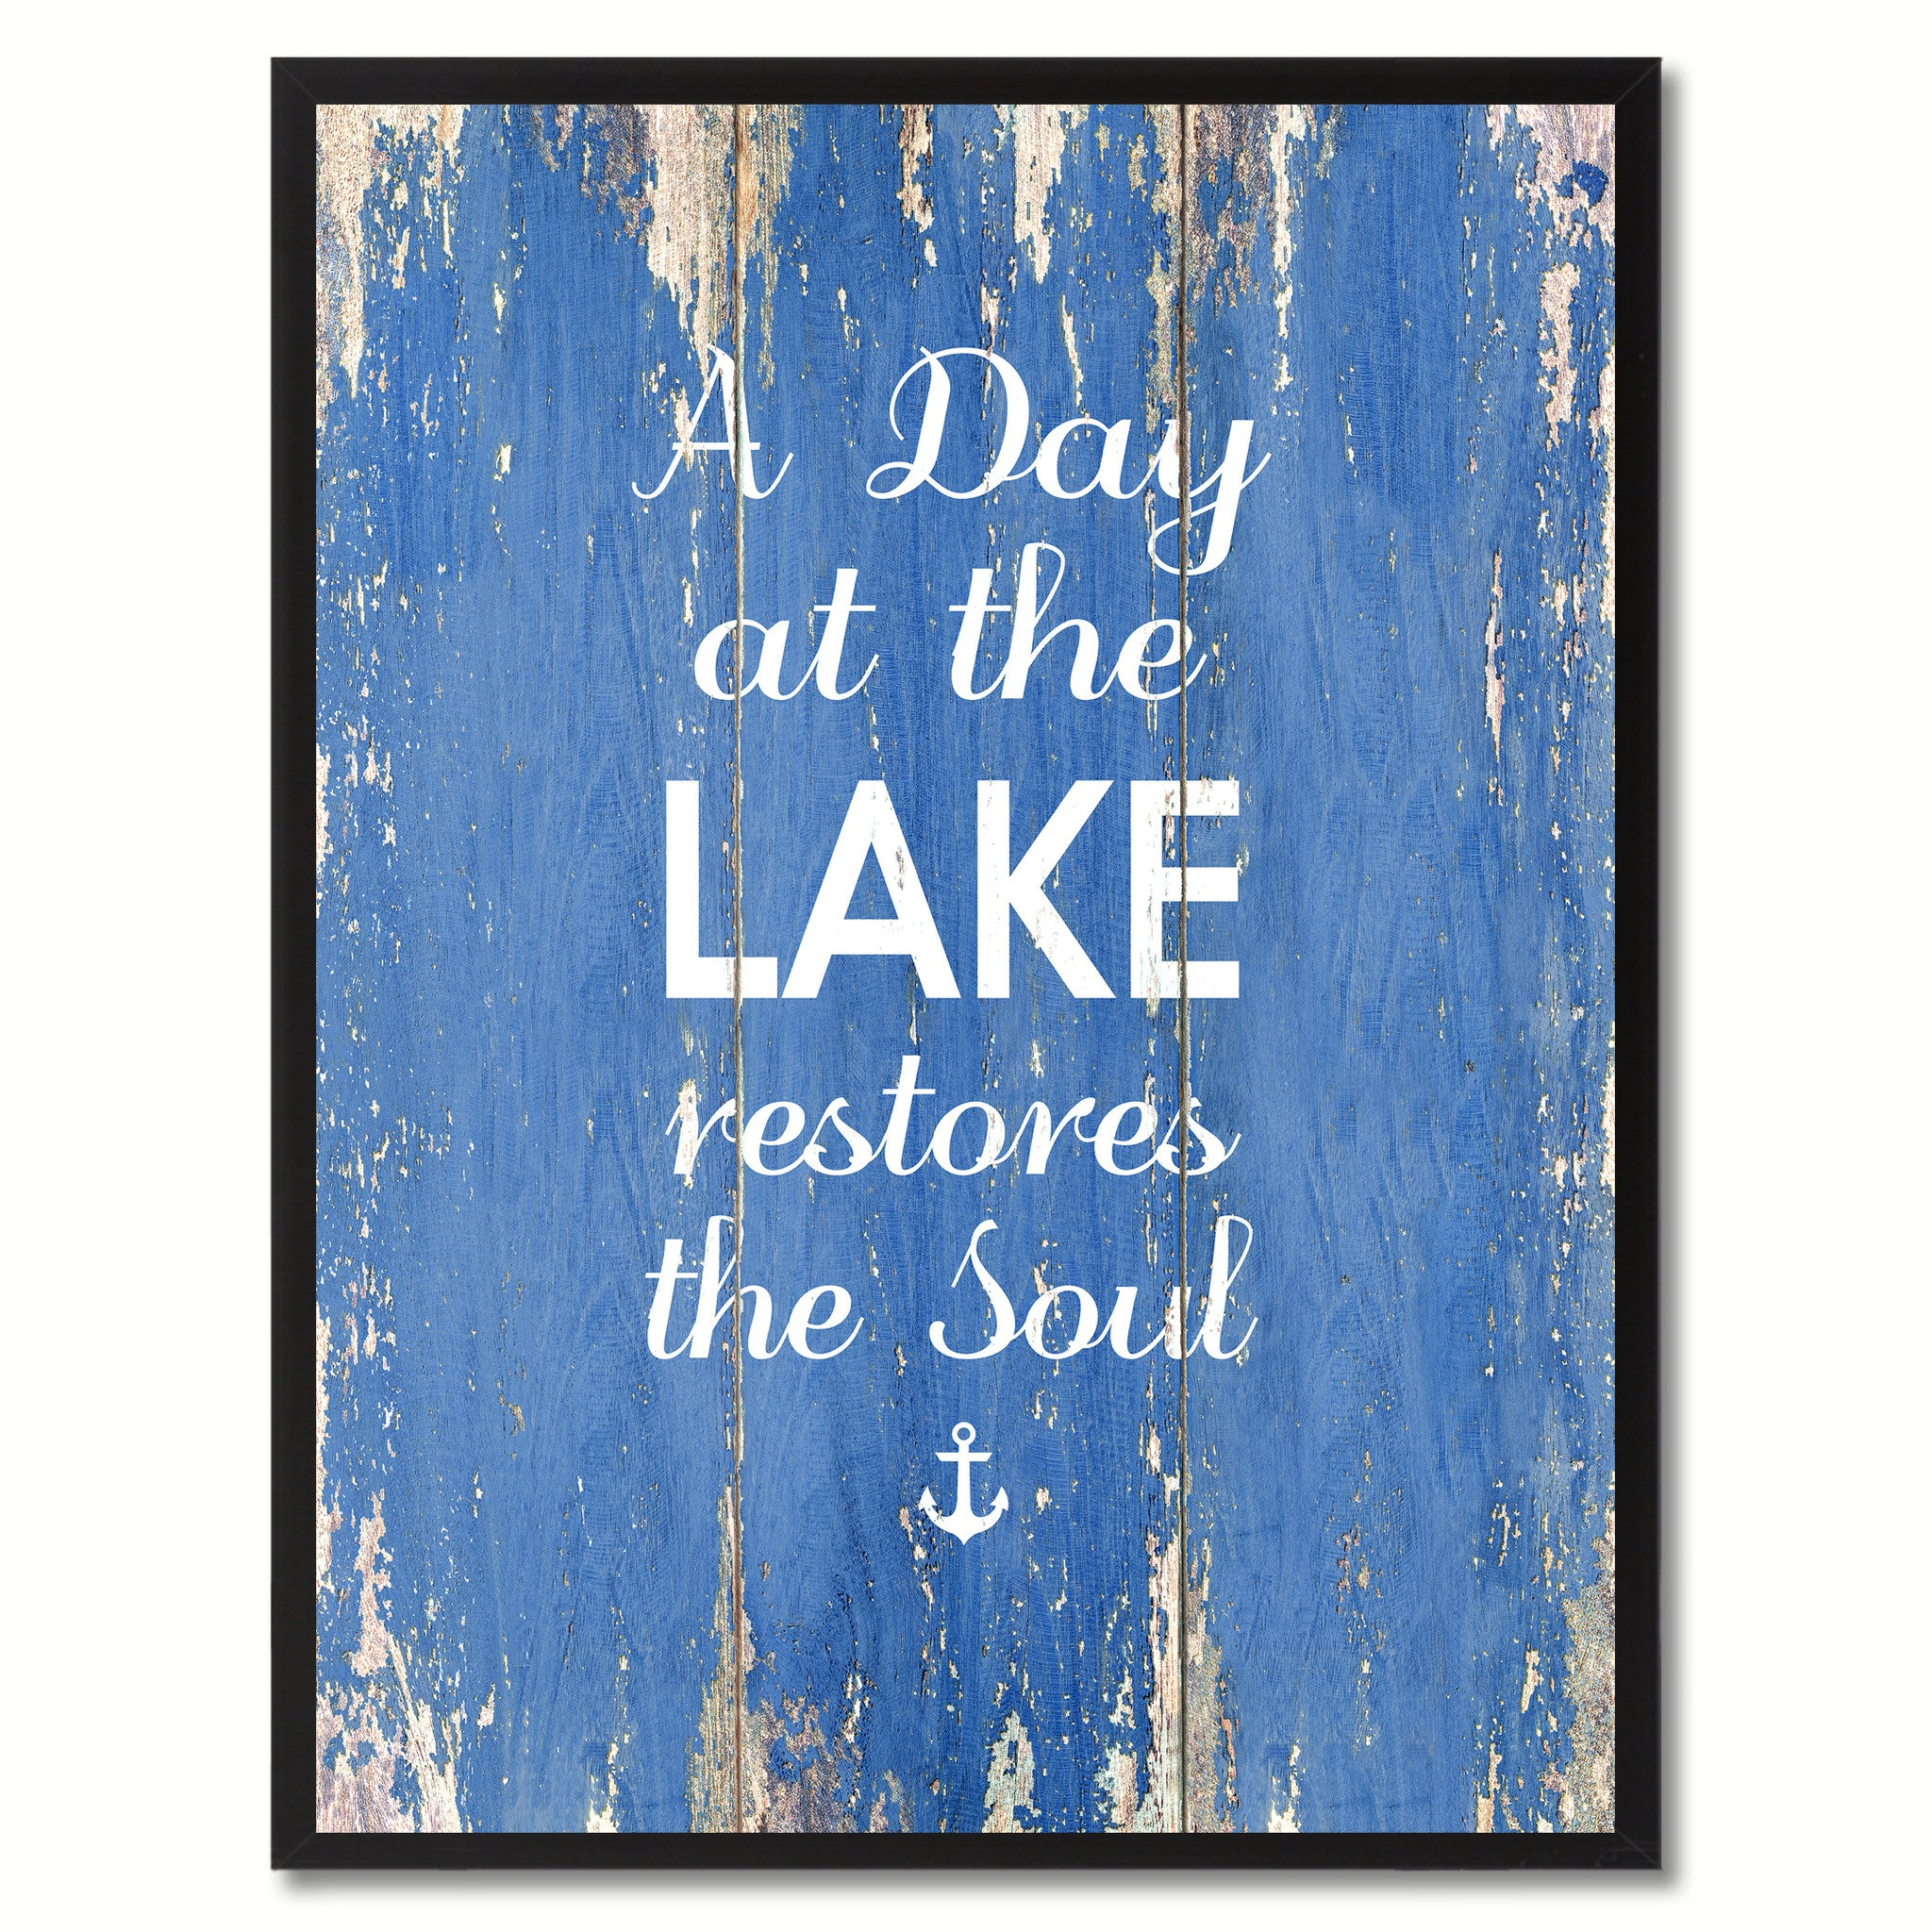 At The Lake Restores The Soul Inspirational Saying Motivation Quote